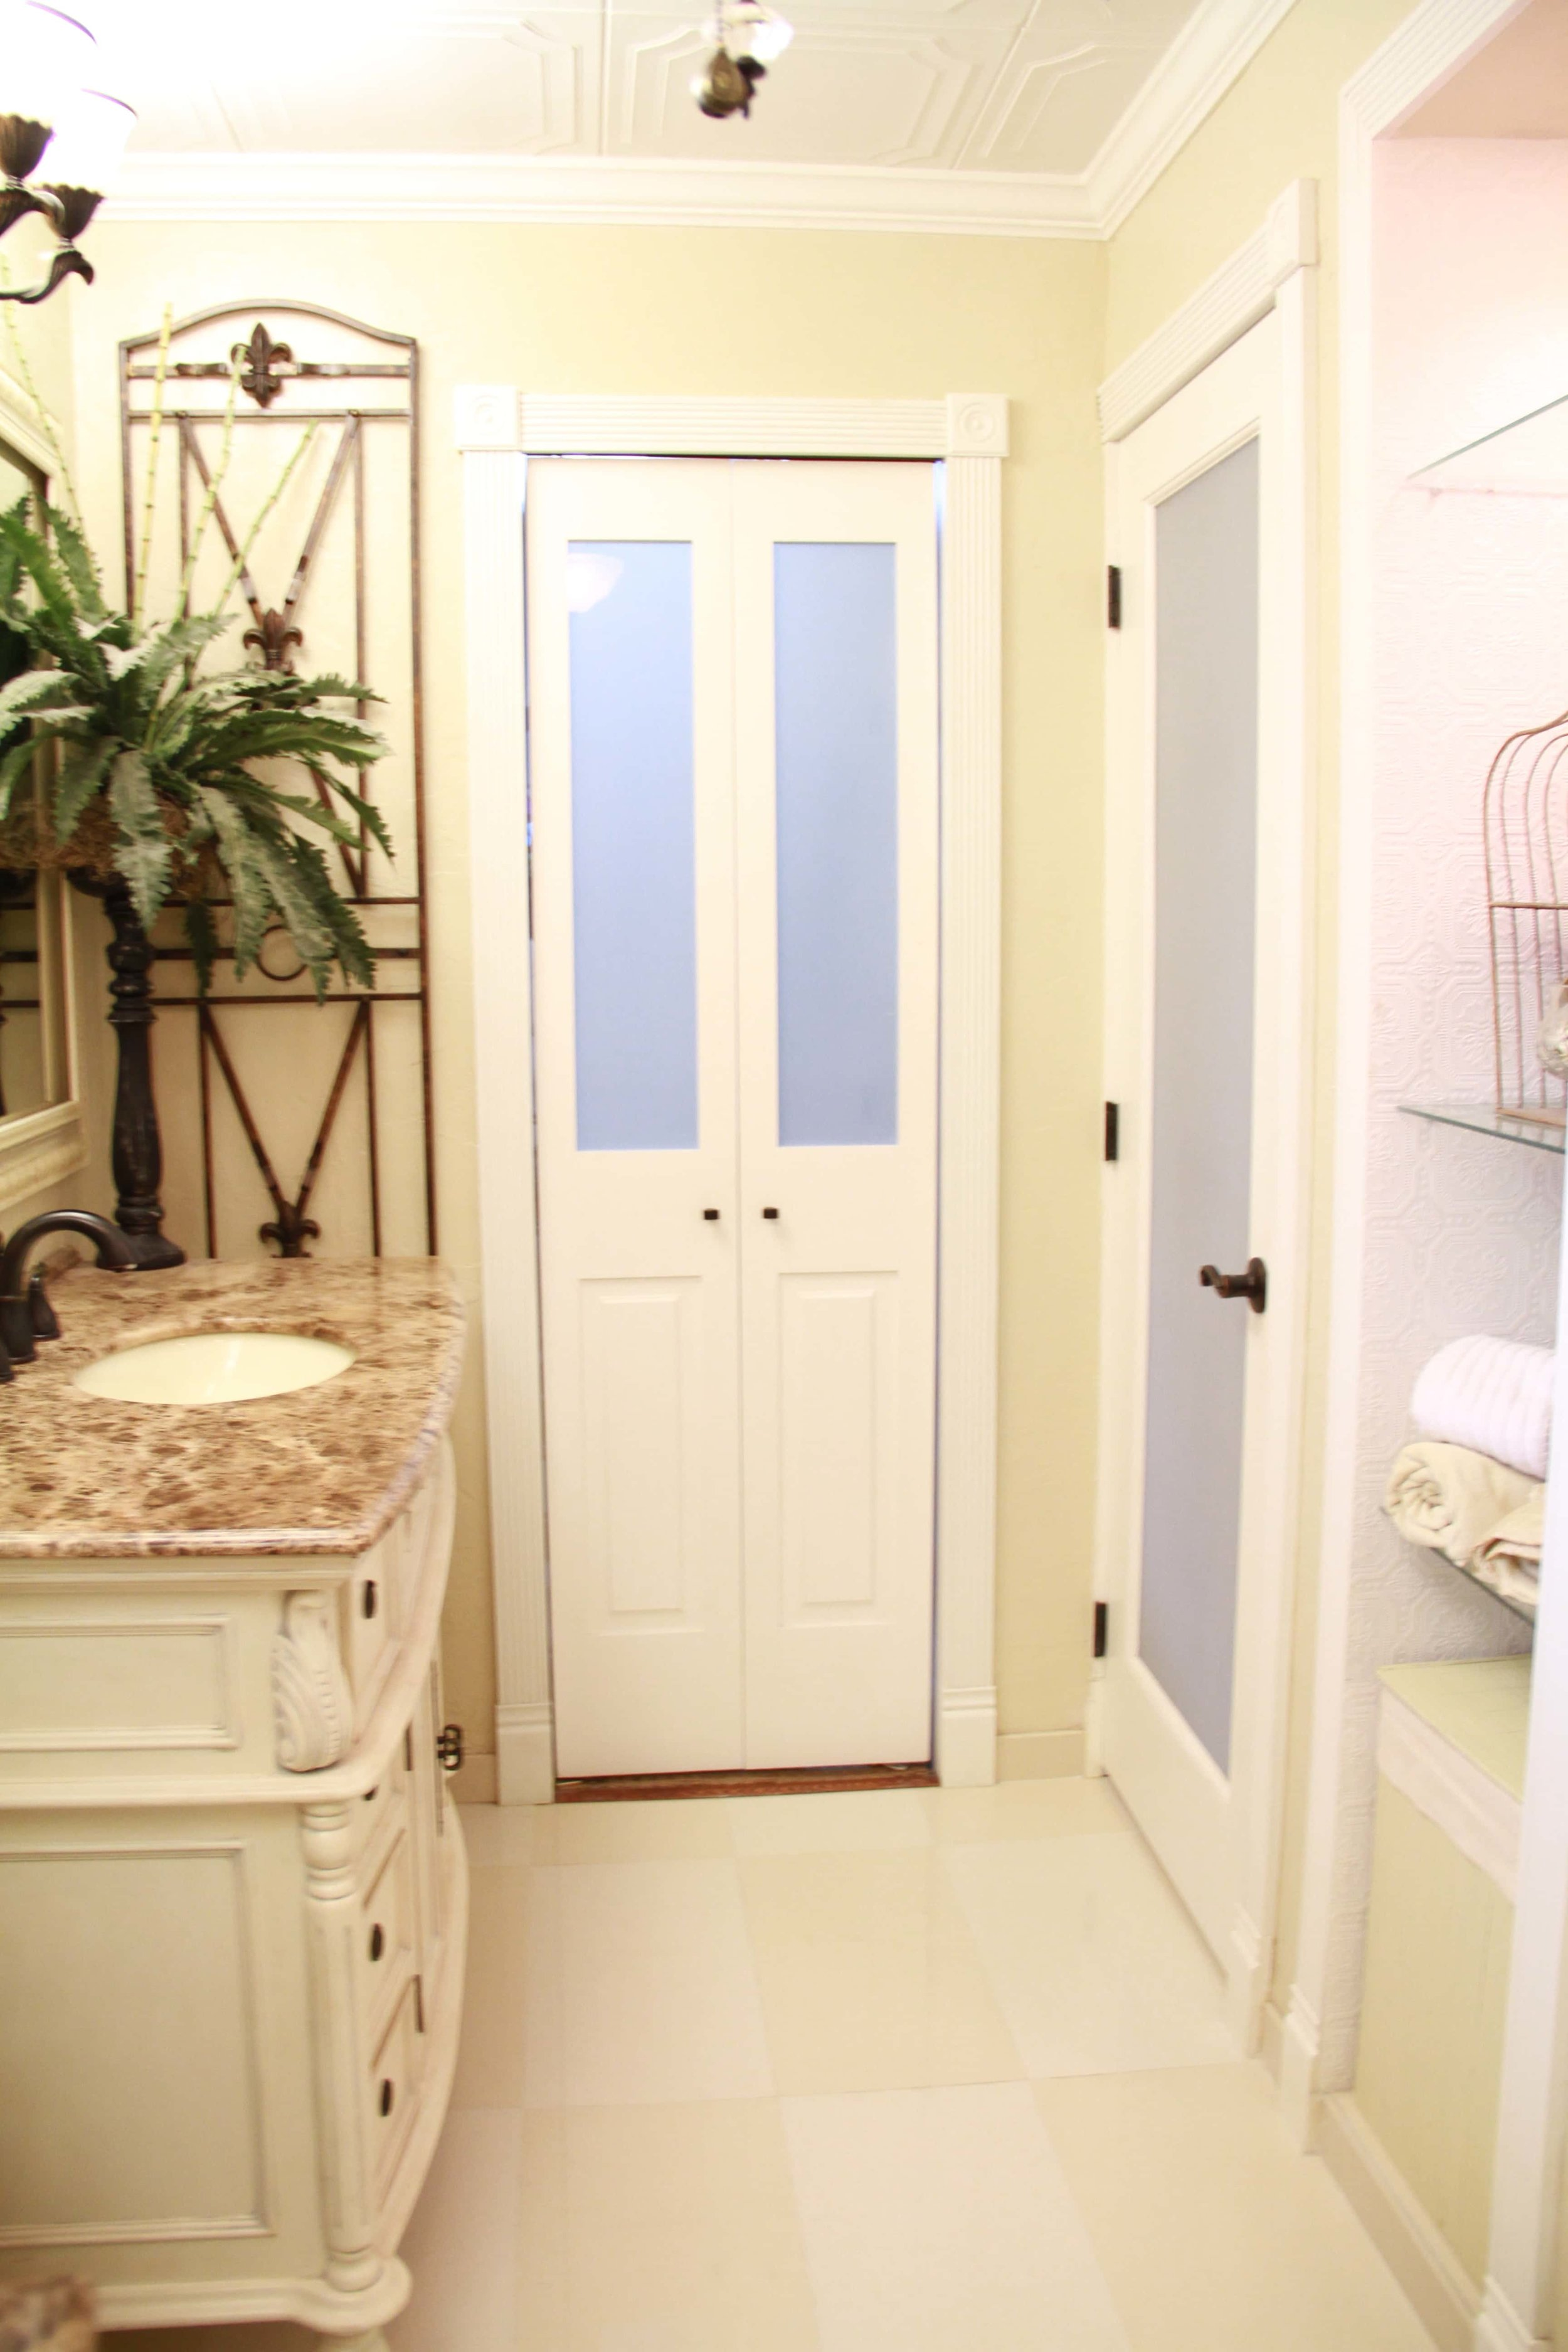 bathroom door style ideas residential interior design metairie uptown khb interiors